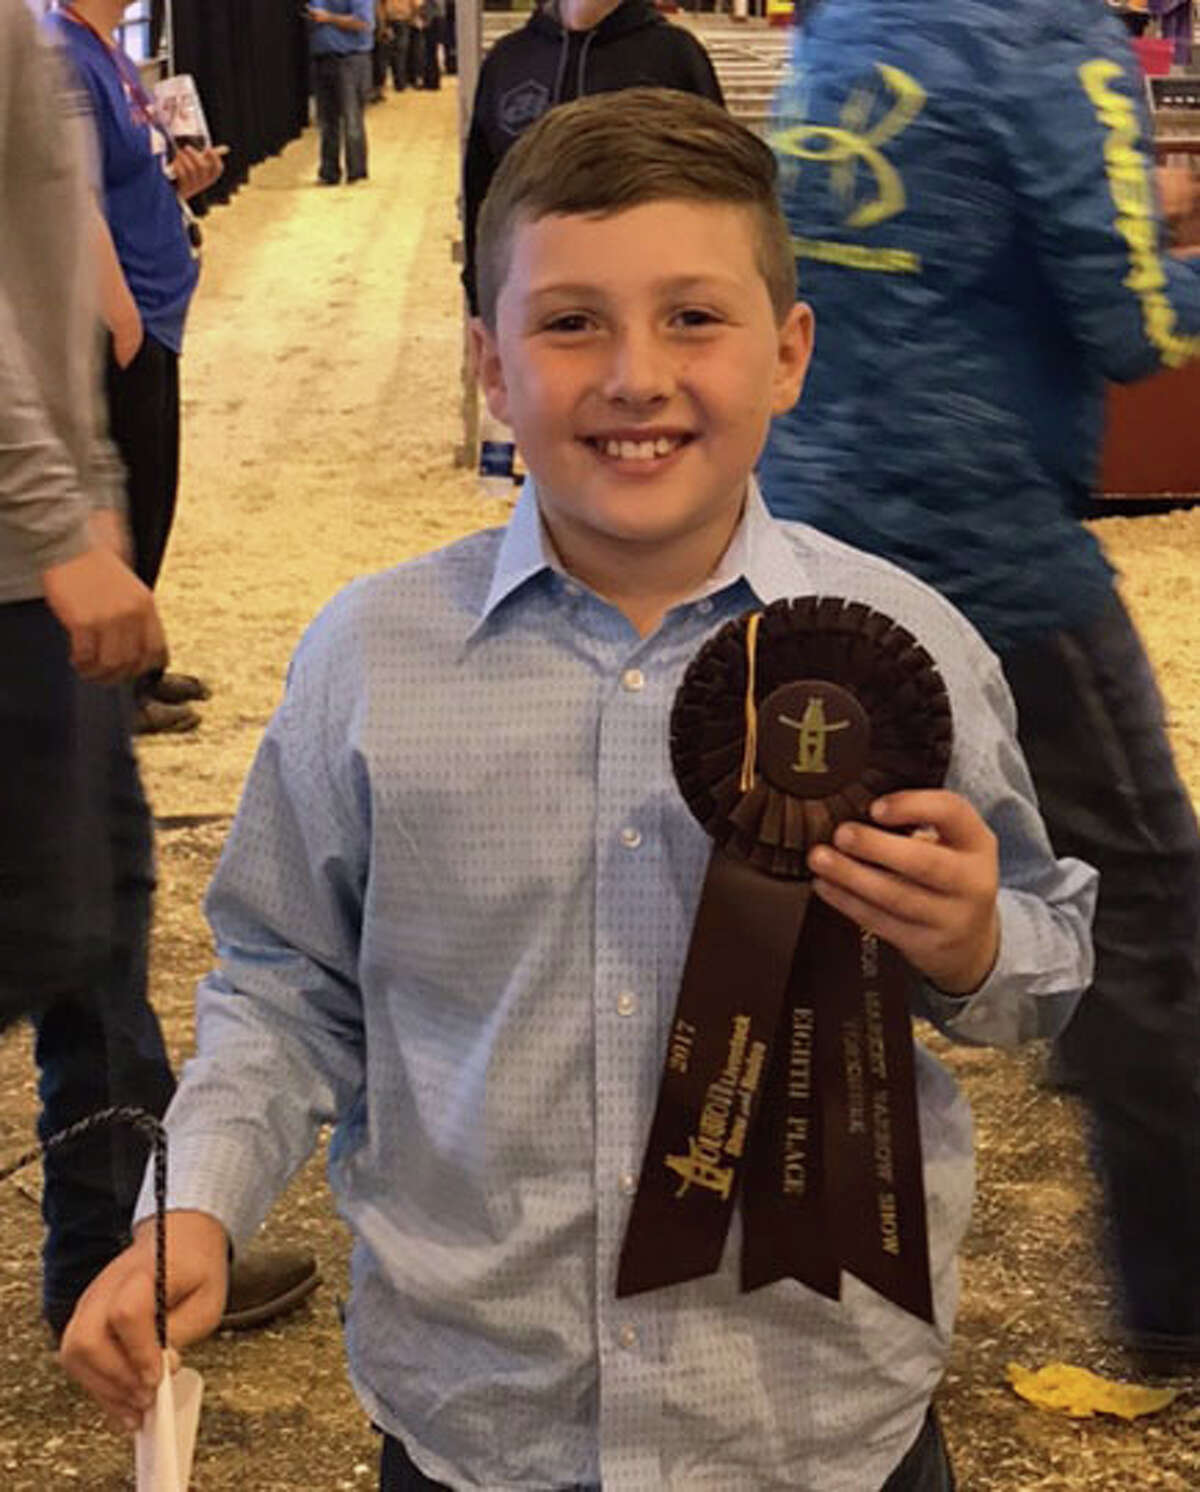 In the first year he was eligible to show at a major stock show, Coldspring Intermediate third-grader Wade Currie placed 8th in the Heavyweight Yorkshire class at the Houston Livestock Show and Rodeo Market Barrow Show, and made the sale.